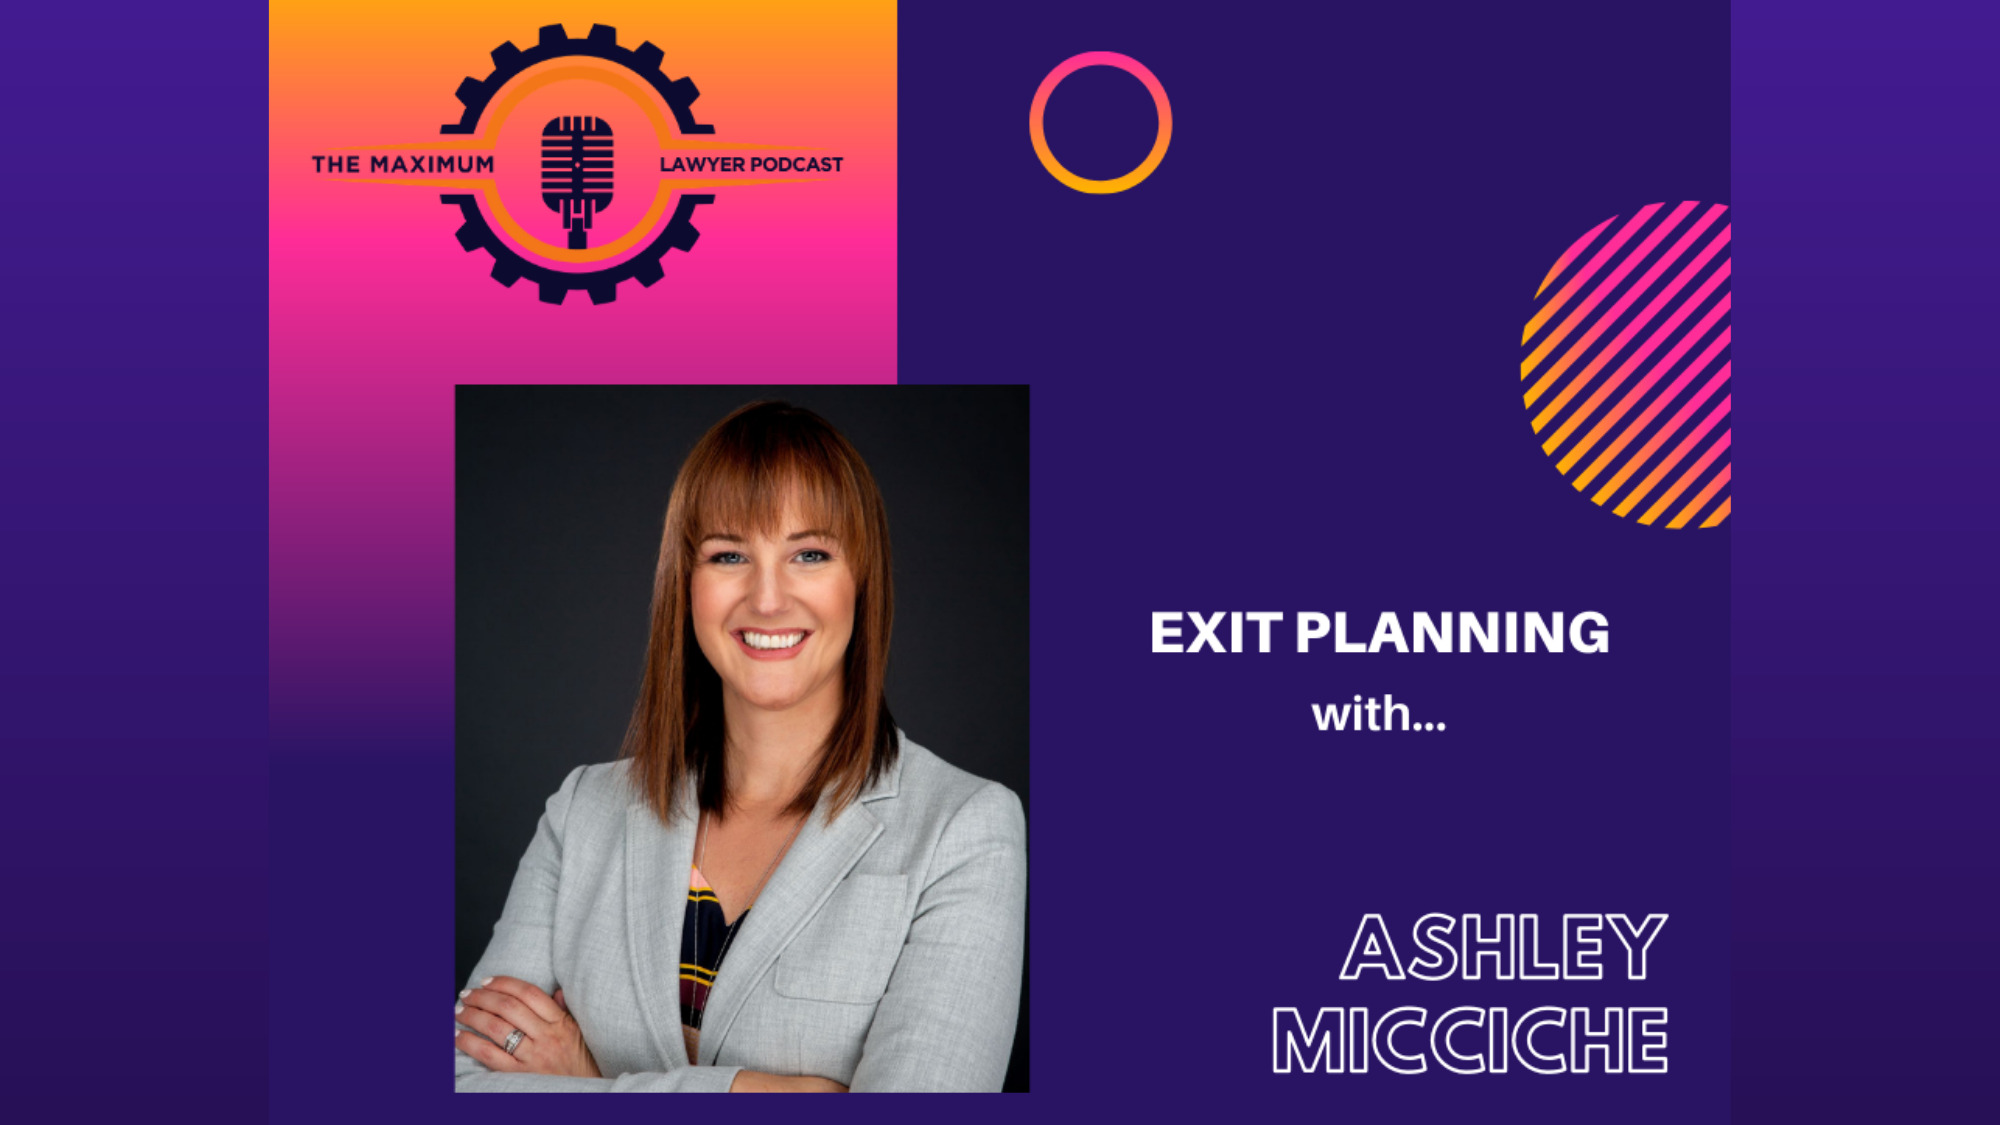 Ashley Micciche on business exit planning during a pandemic